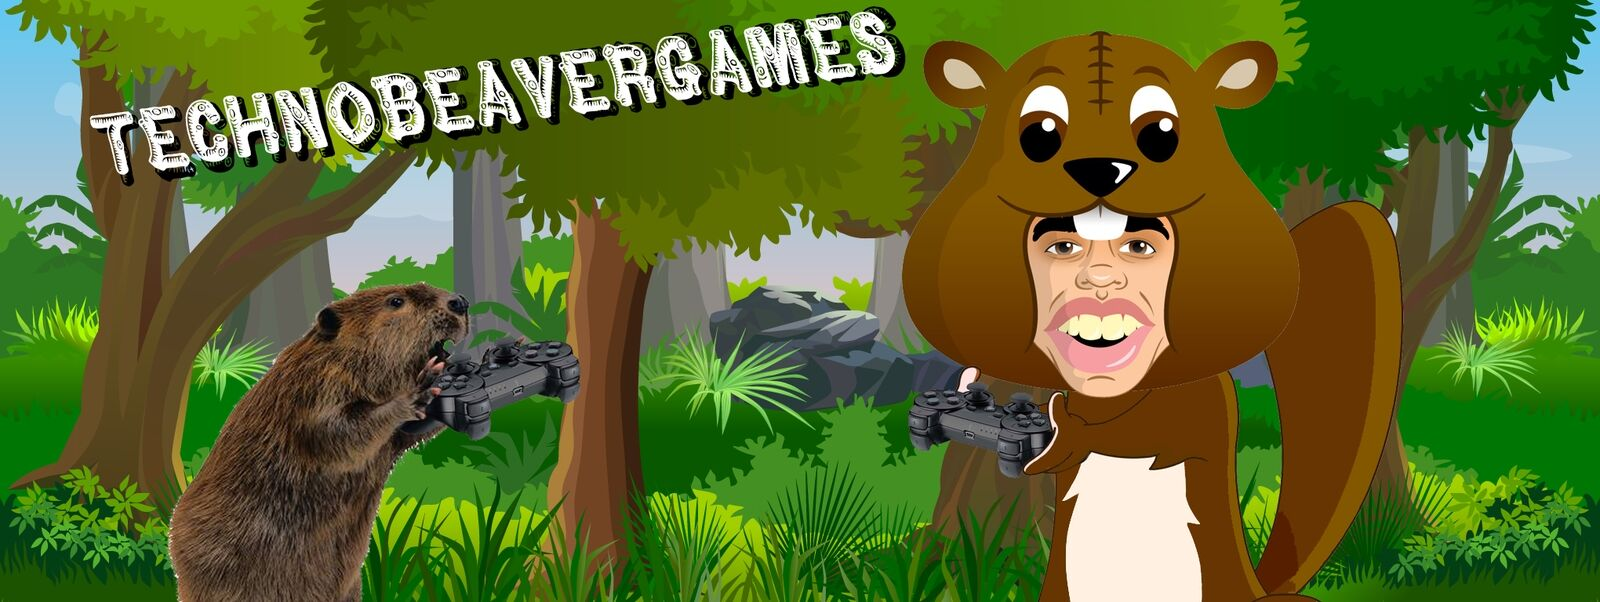 Techno Beaver Games